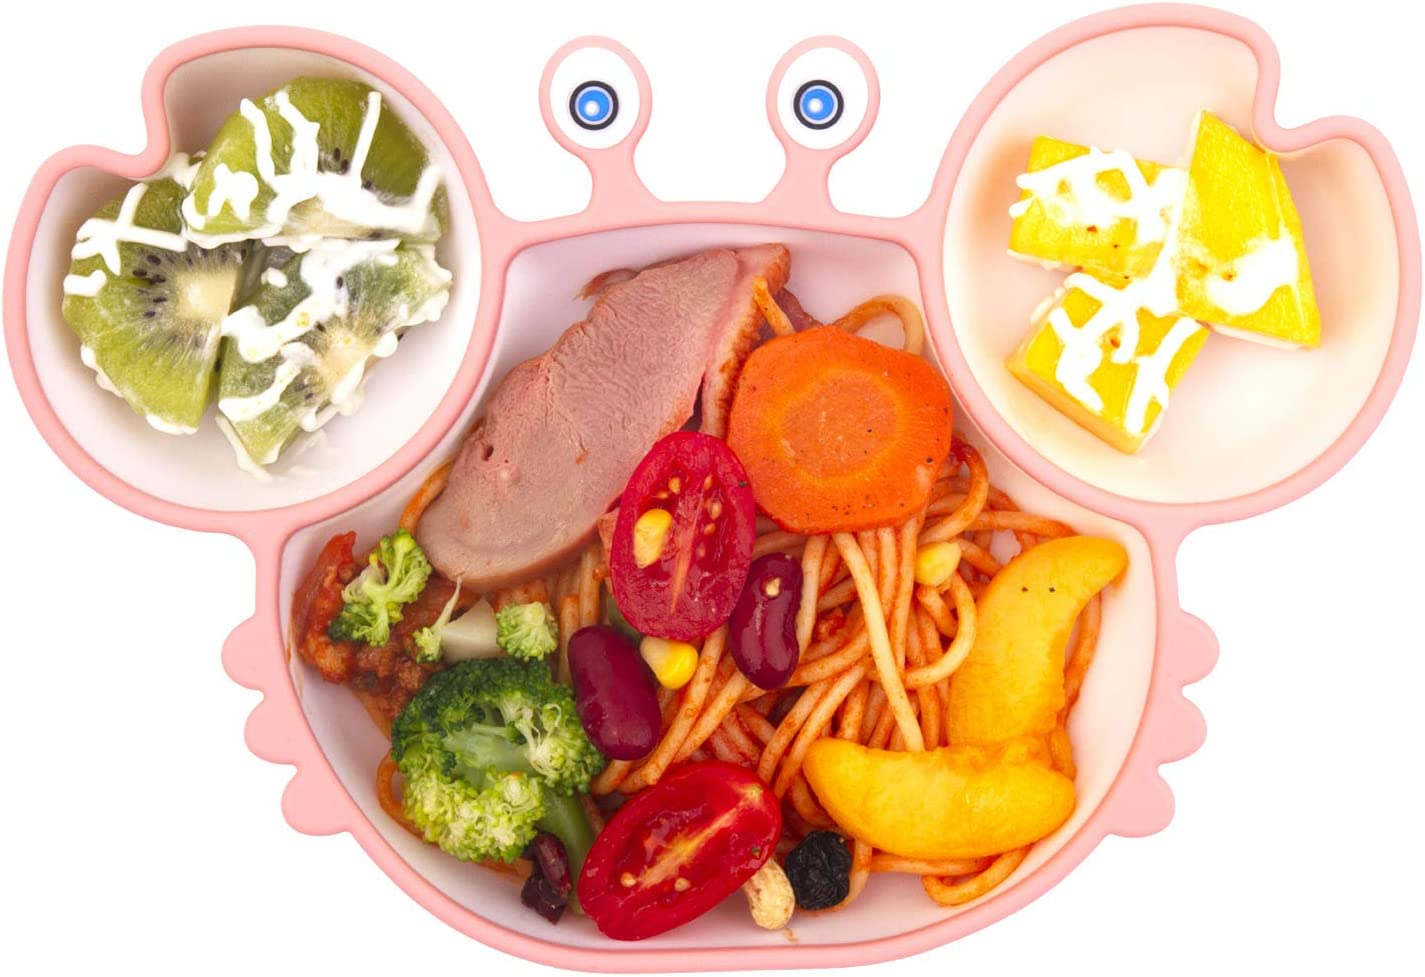 Self Feeding Training Divided Plate Dish and Bowl for Baby and Toddler Silicone Suction Plate for Toddlers BPA Free Microwave Dishwasher Safe Fits for Most Highchairs Trays